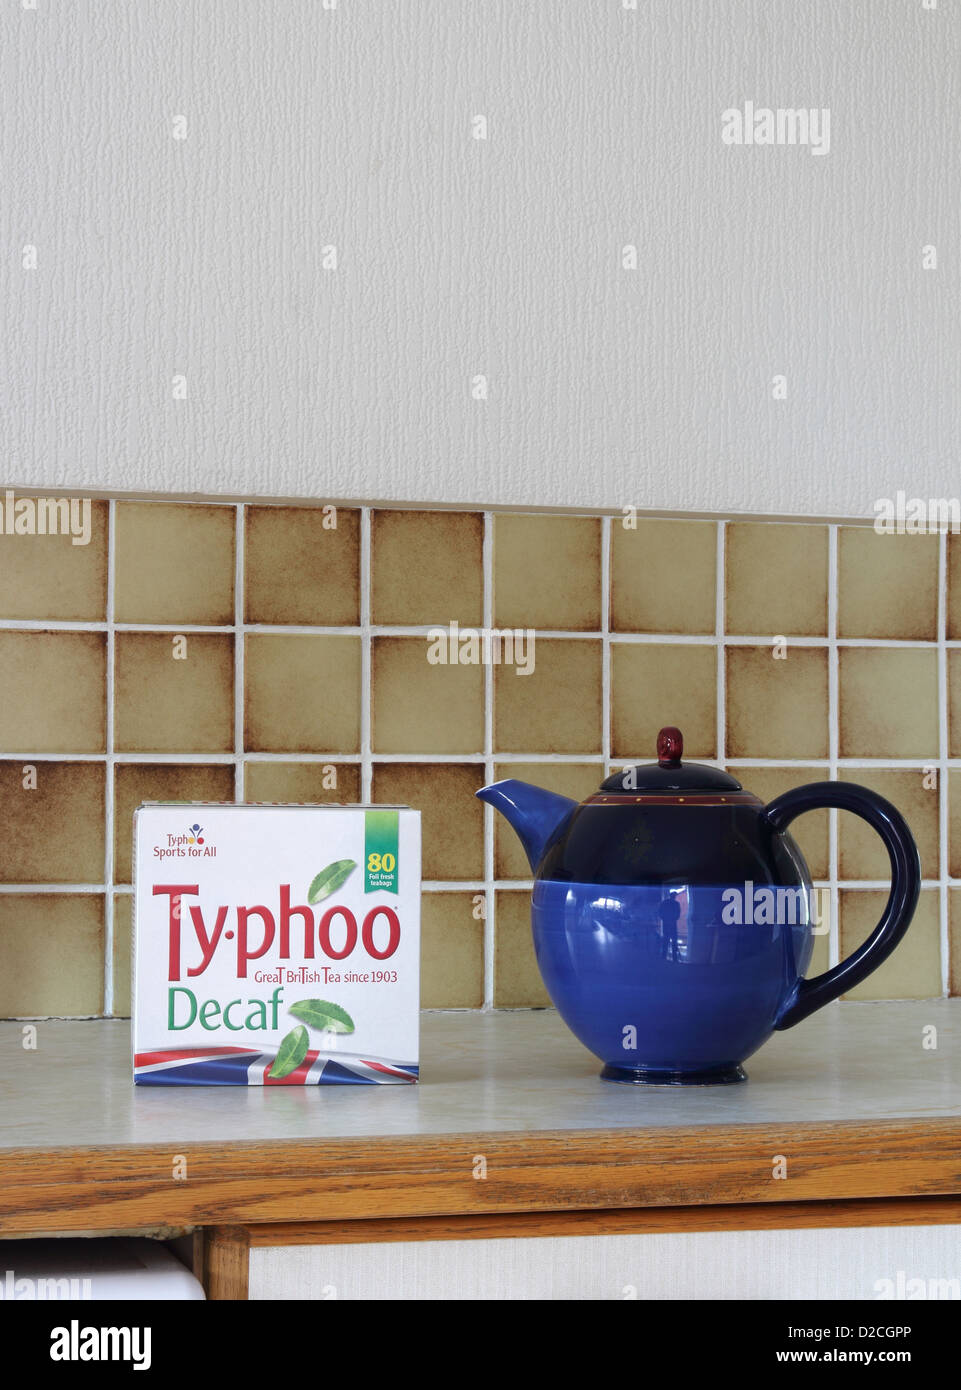 Packet of Ty-phoo Tea with Teapot in a Kitchen Setting, UK - Stock Image